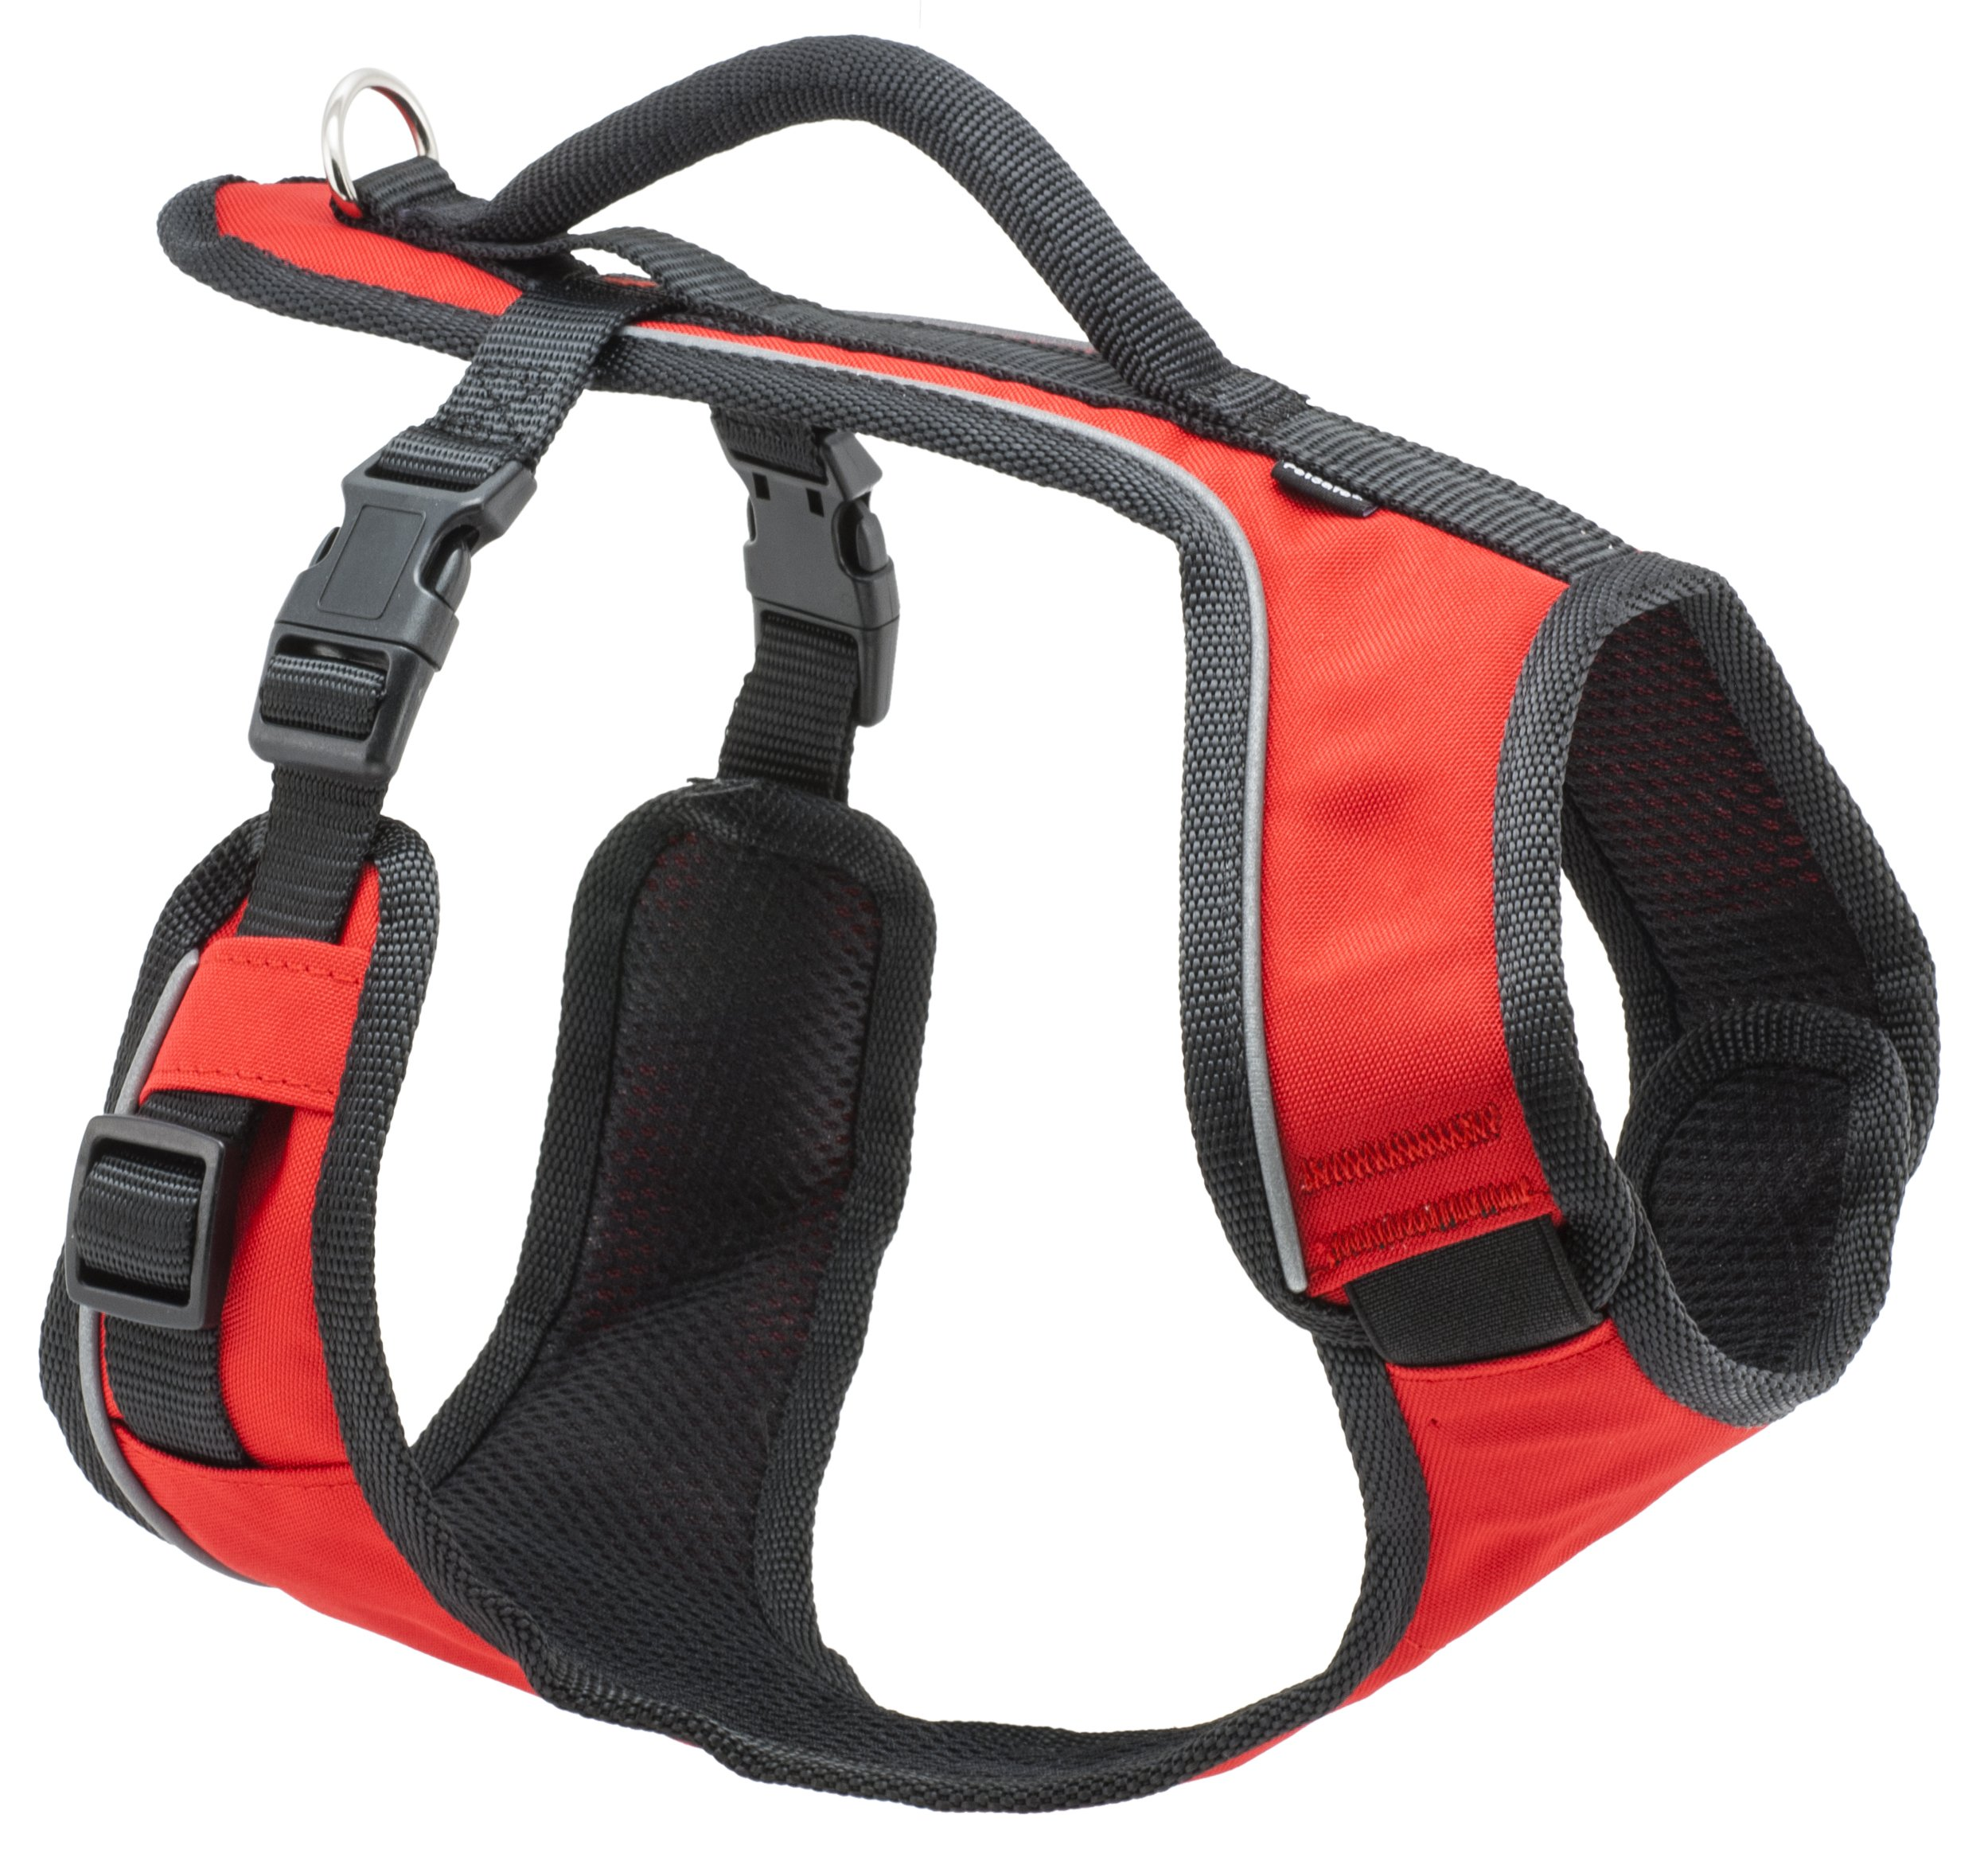 PetSafe EasySport Dog Harness, Adjustable Padded Dog Harness with Control Handle and Reflective Piping, From the Makers of the Easy Walk Harness